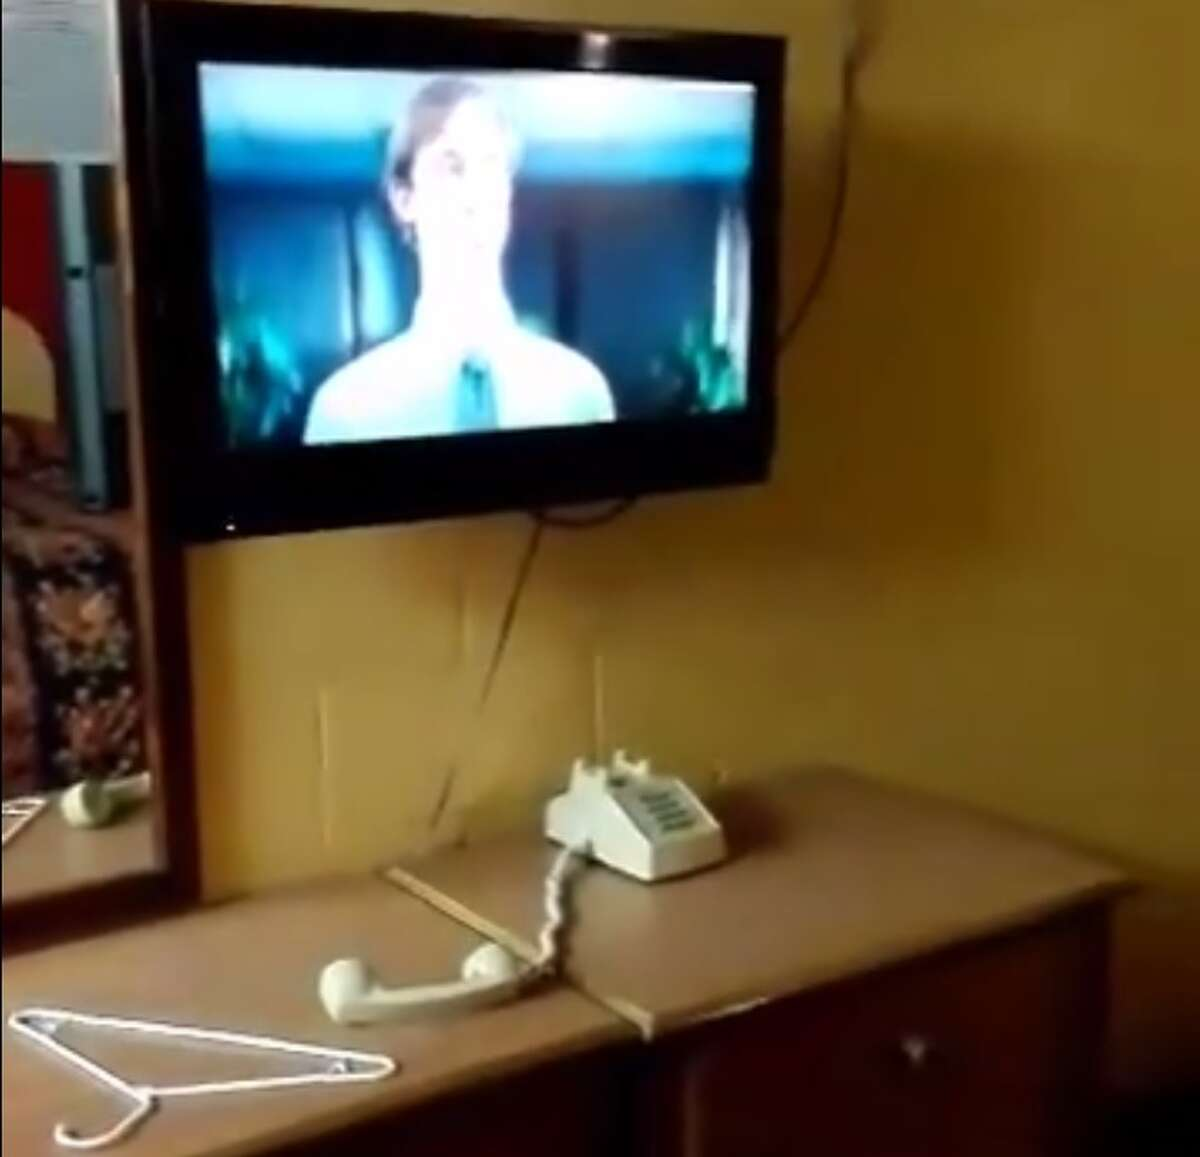 Potus Frank Ramirez posted a video on Facebook about a hotel room he believed to be haunted in South Texas. In the video, the ghost unsaddles the corded phone, moves a towel and knocks off a hanger from a dresser. Image source: Facebook